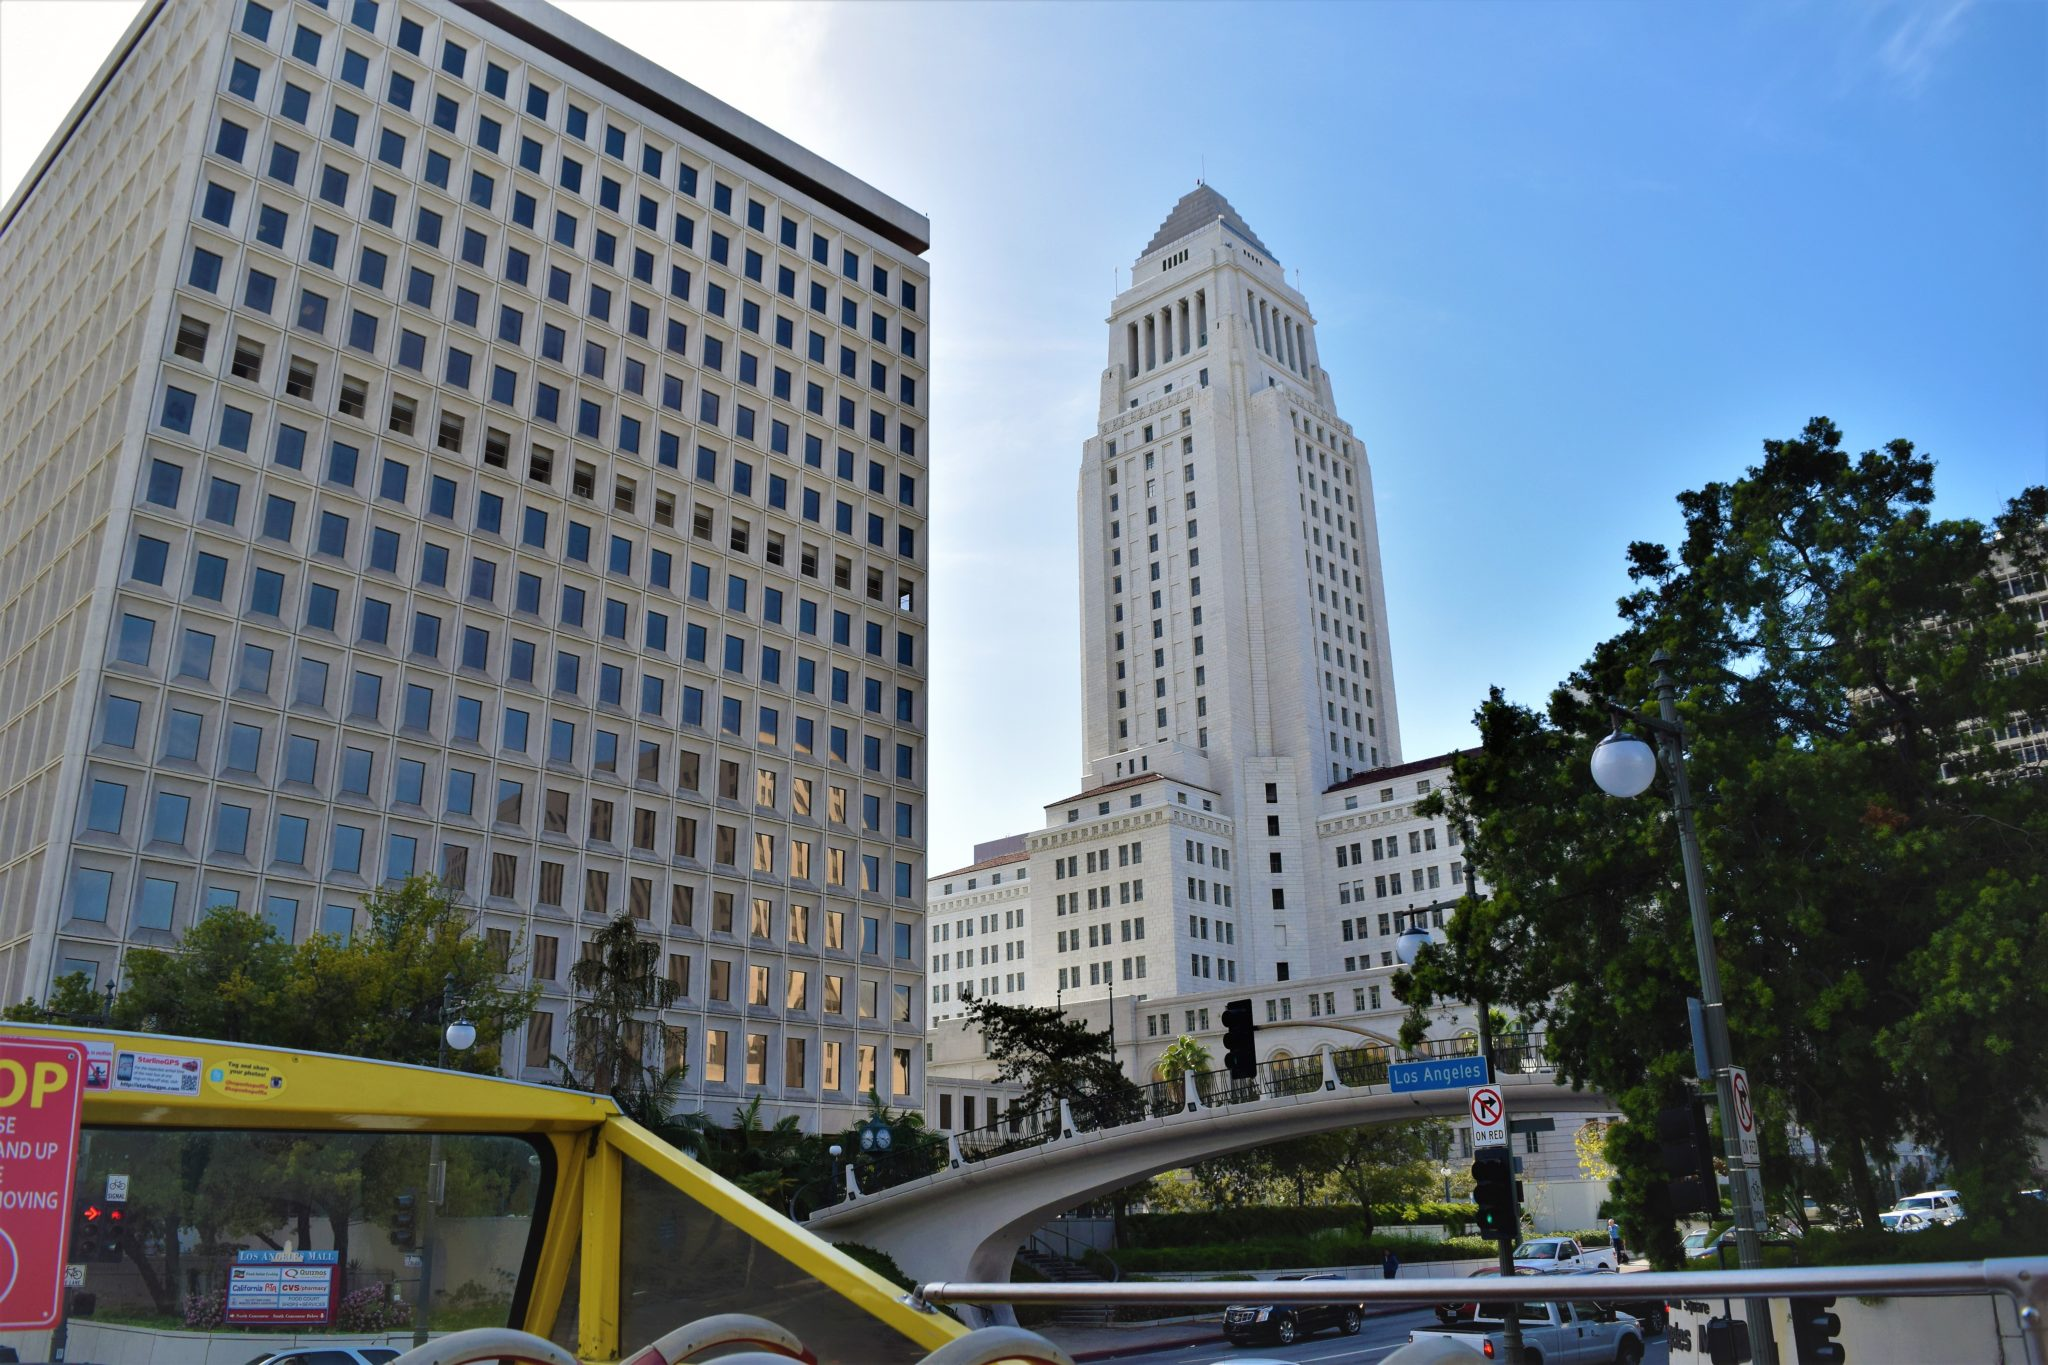 White building downtown los angeles, hop on hop off bus view